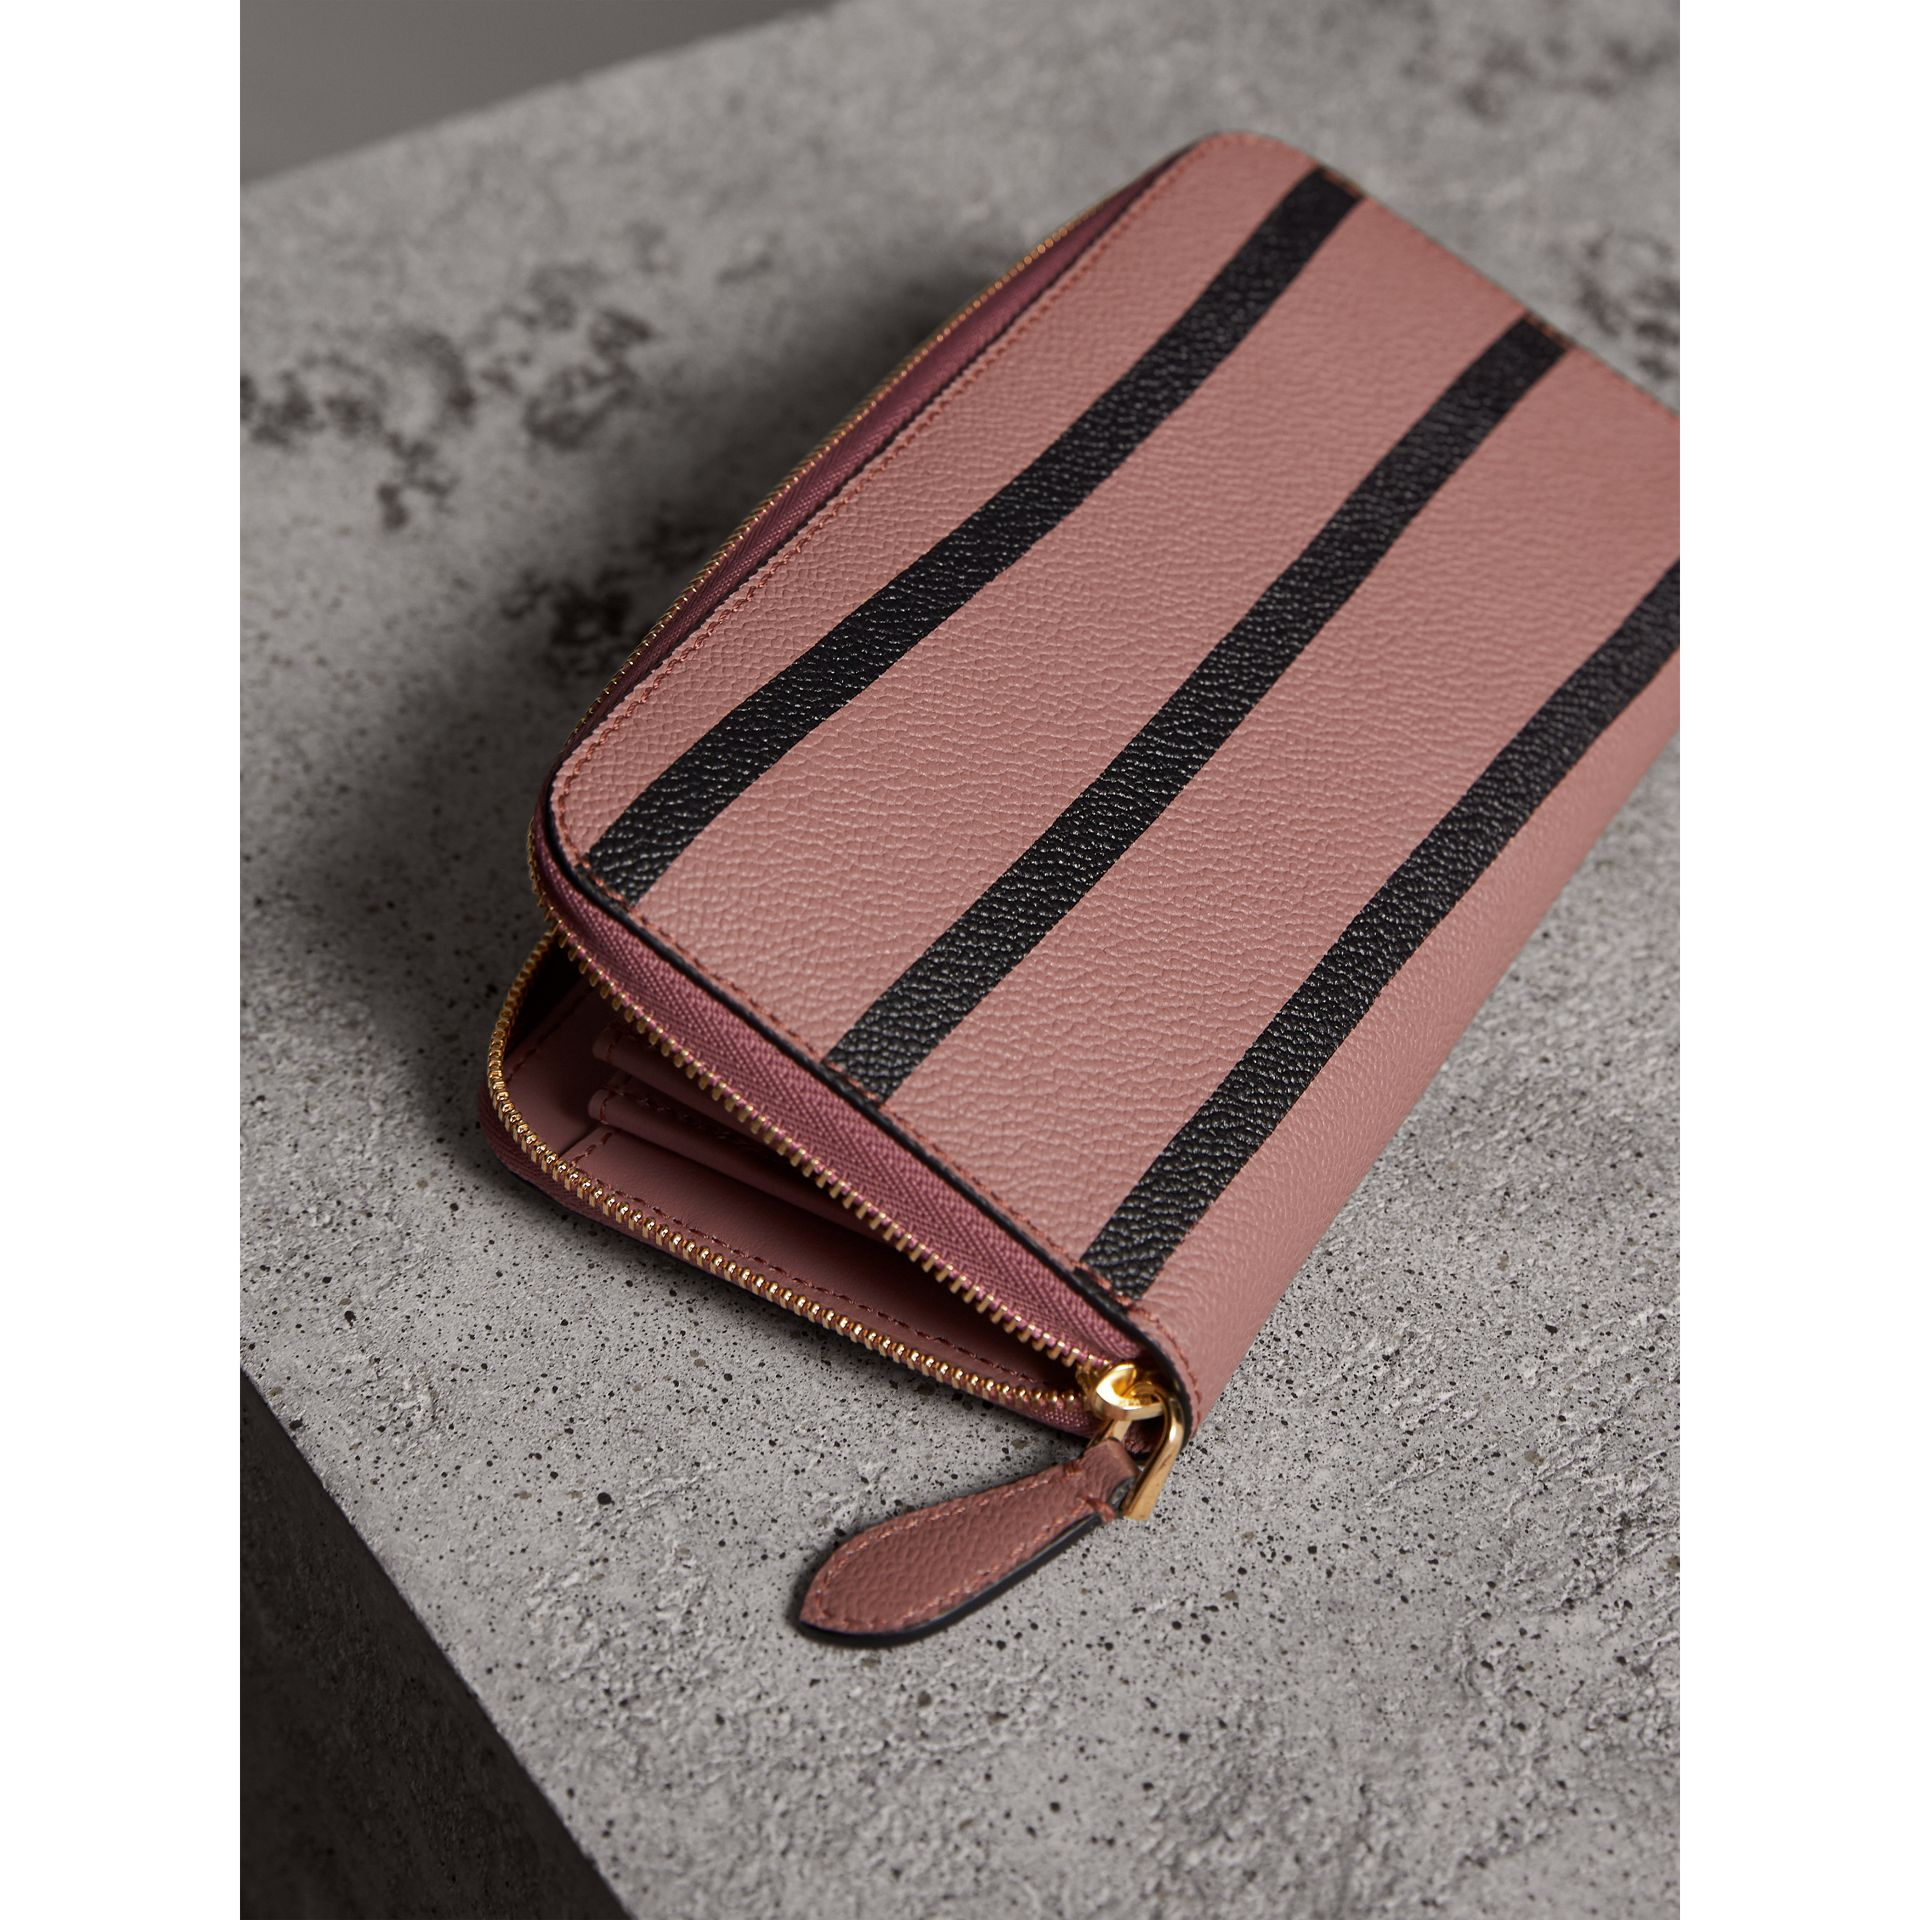 Trompe L'oeil Print Leather Ziparound Wallet in Dusty Pink - Women | Burberry - gallery image 7